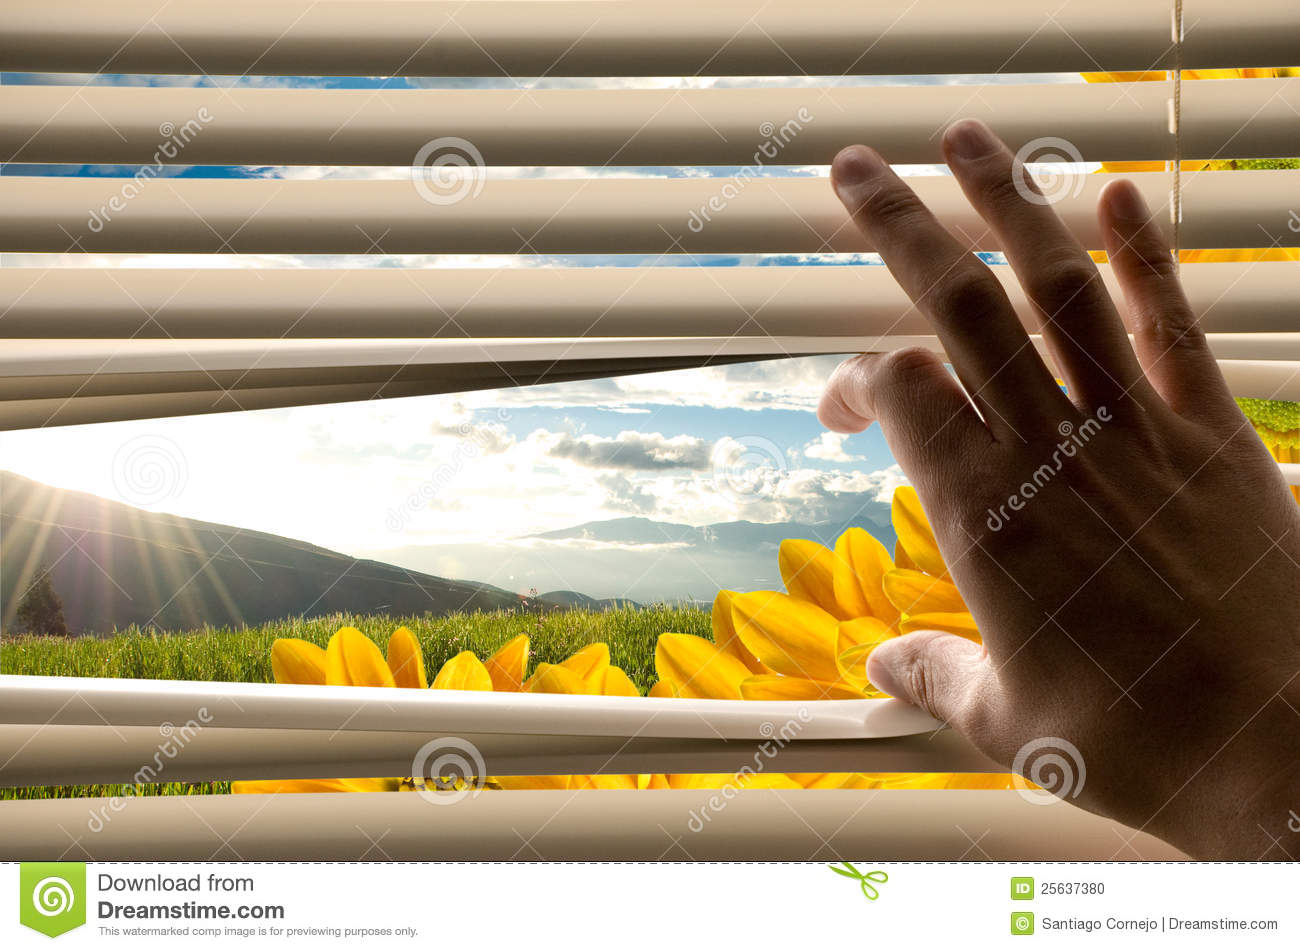 Hand Opening Blinds With Beautiful Landscape View Stock